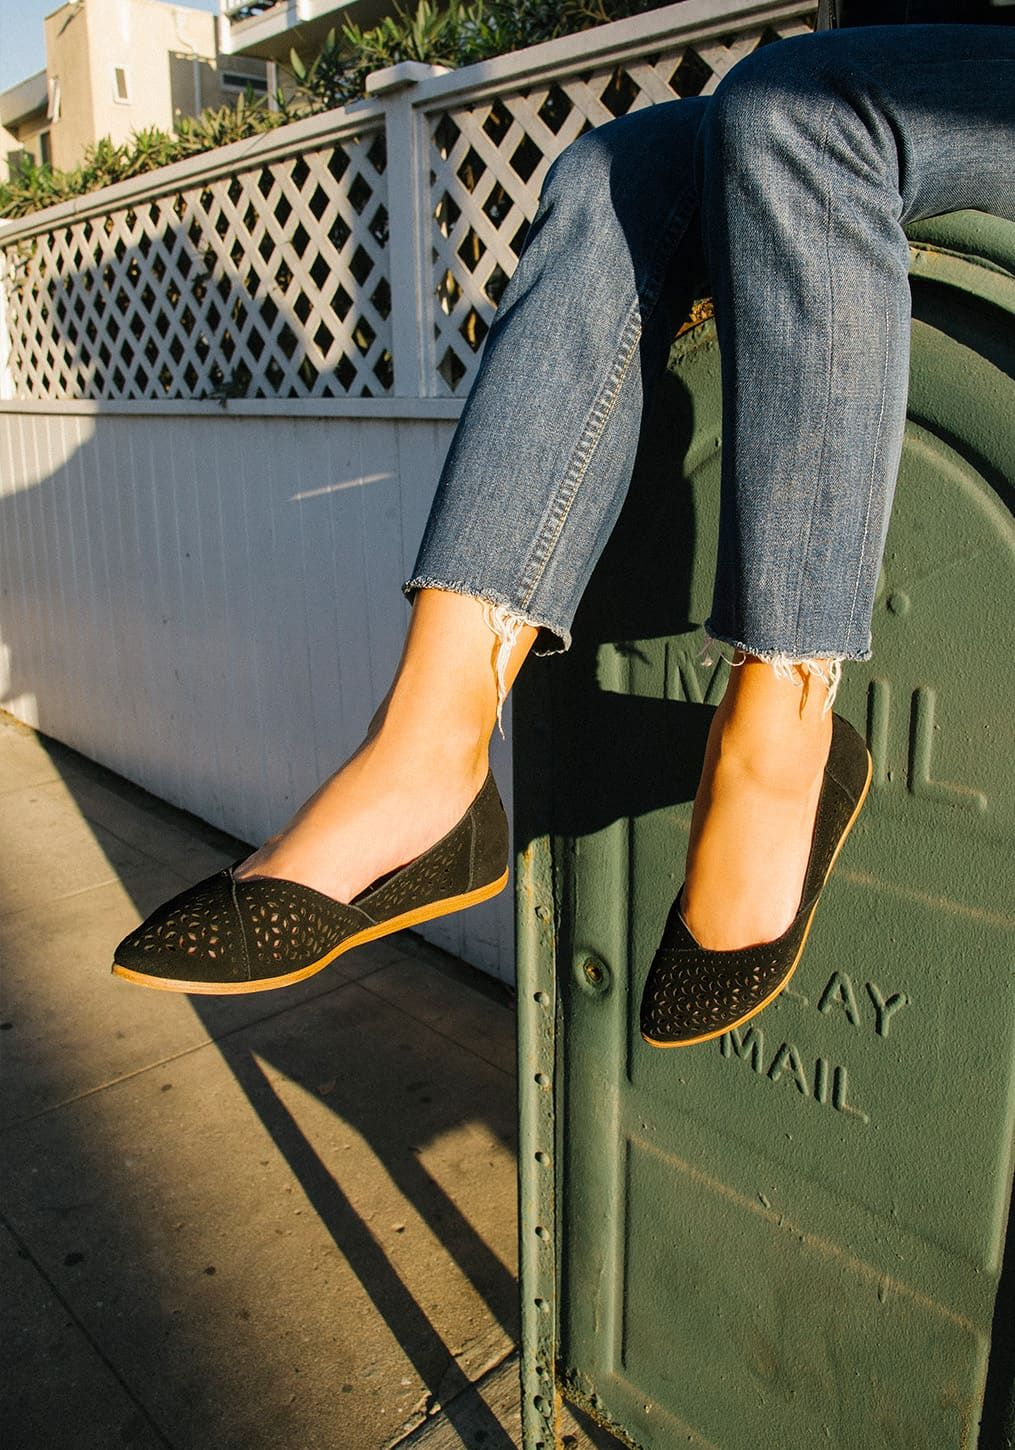 82014e2b8 Not quite as bold as heels, yet not as casual as sneakers, flats are the  business casual go-to. The Jutti was inspired by our travels to India, ...